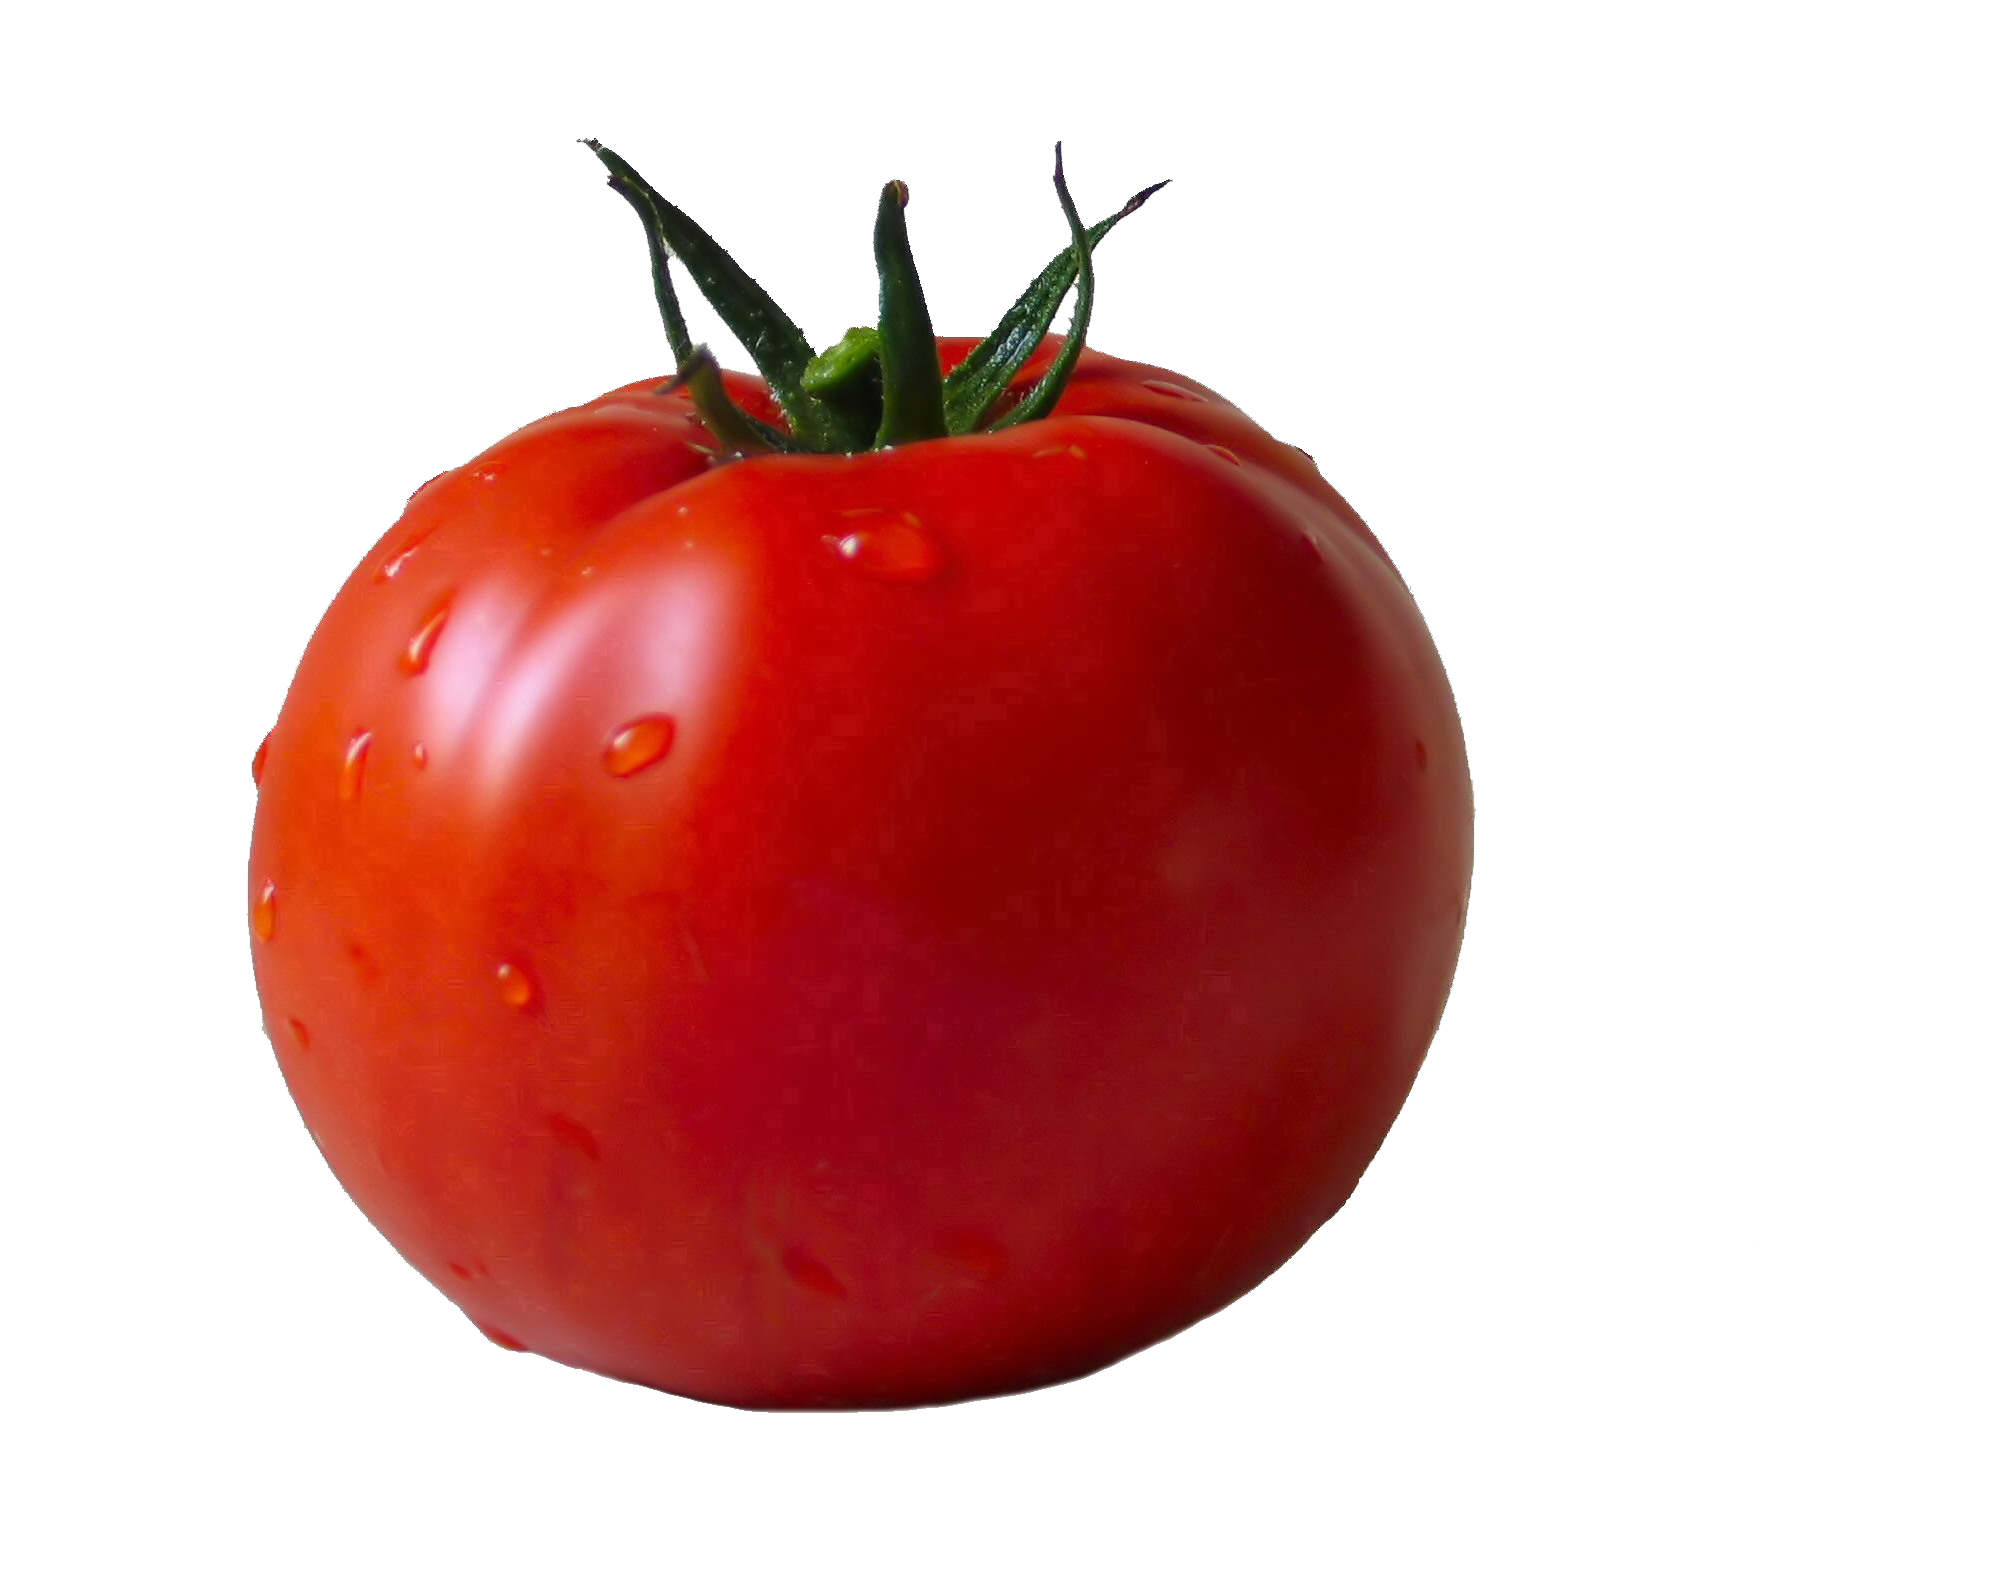 Tomato png, image, picture - Tomato HD PNG - Tomato PNG HD